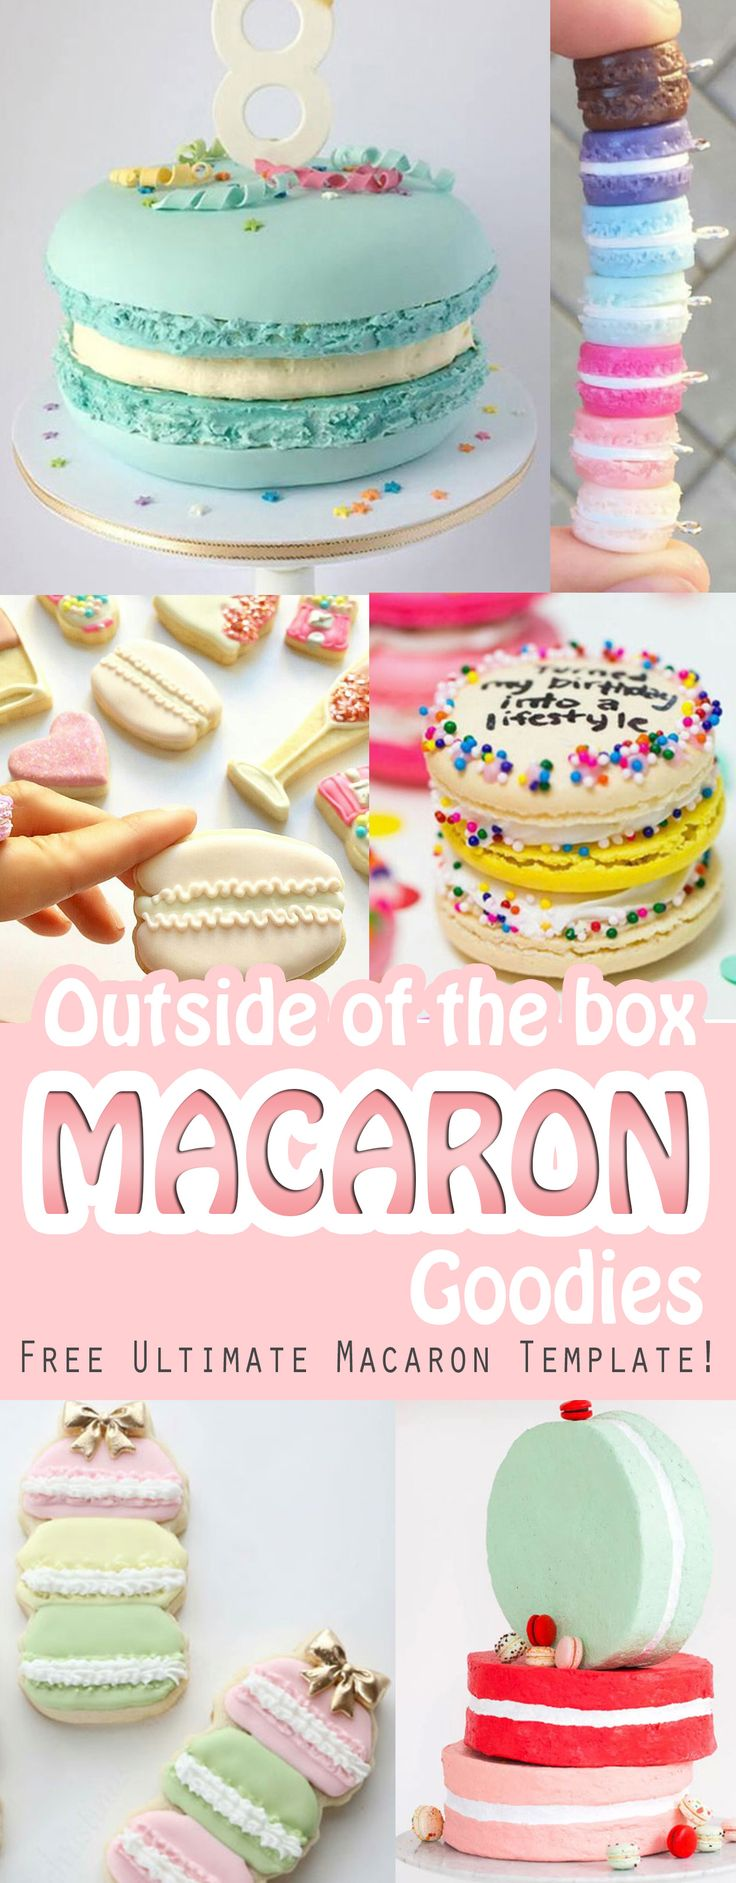 best images about macarons pistachios meringue top picks for out of the ordinary macaron inspirations like macaron shaped cakes cookies